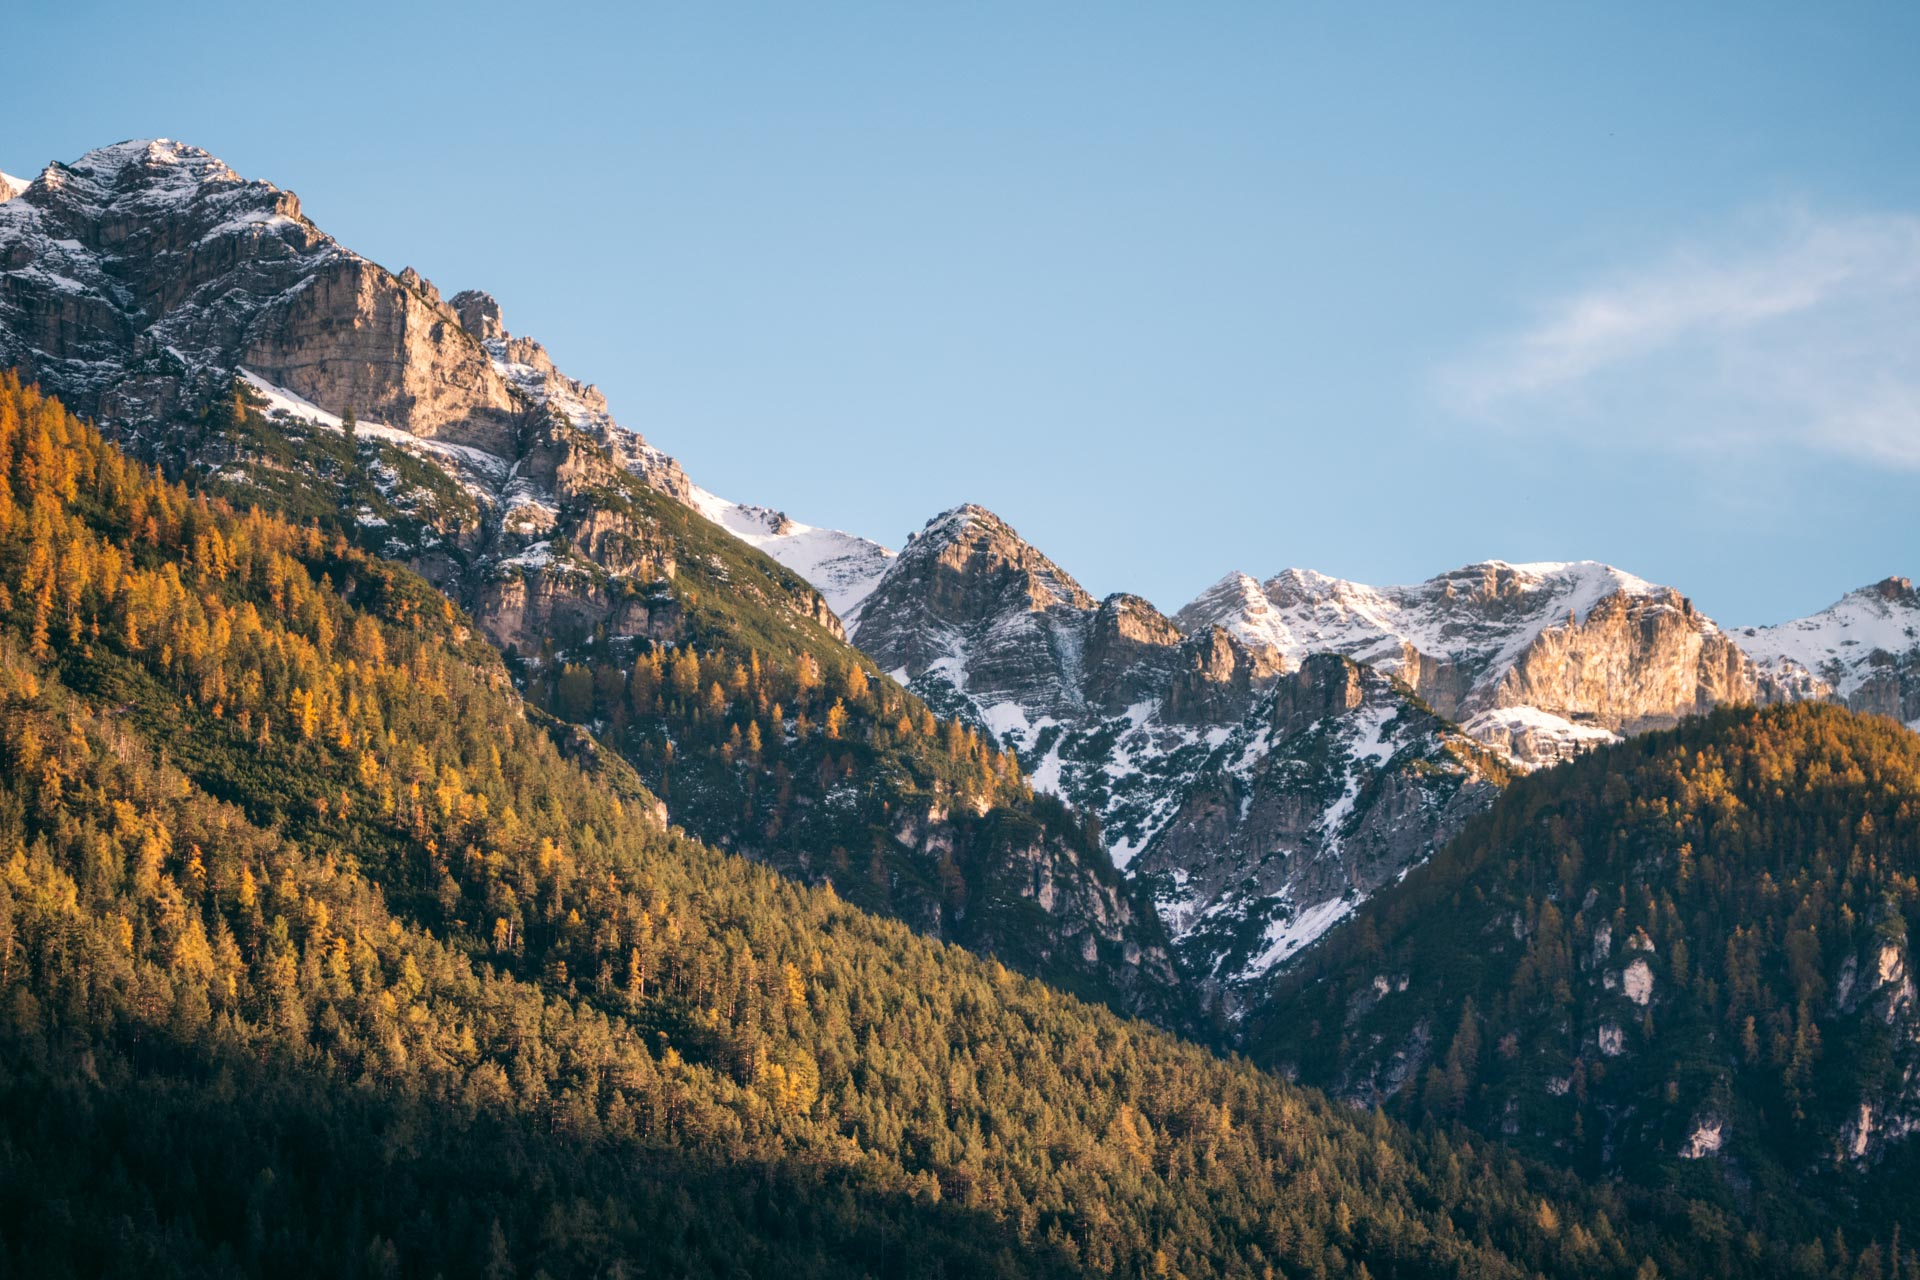 Autumn in Tyrol, Austria: Hiking, Skiing & Other Amazing Things to Do in Low Season